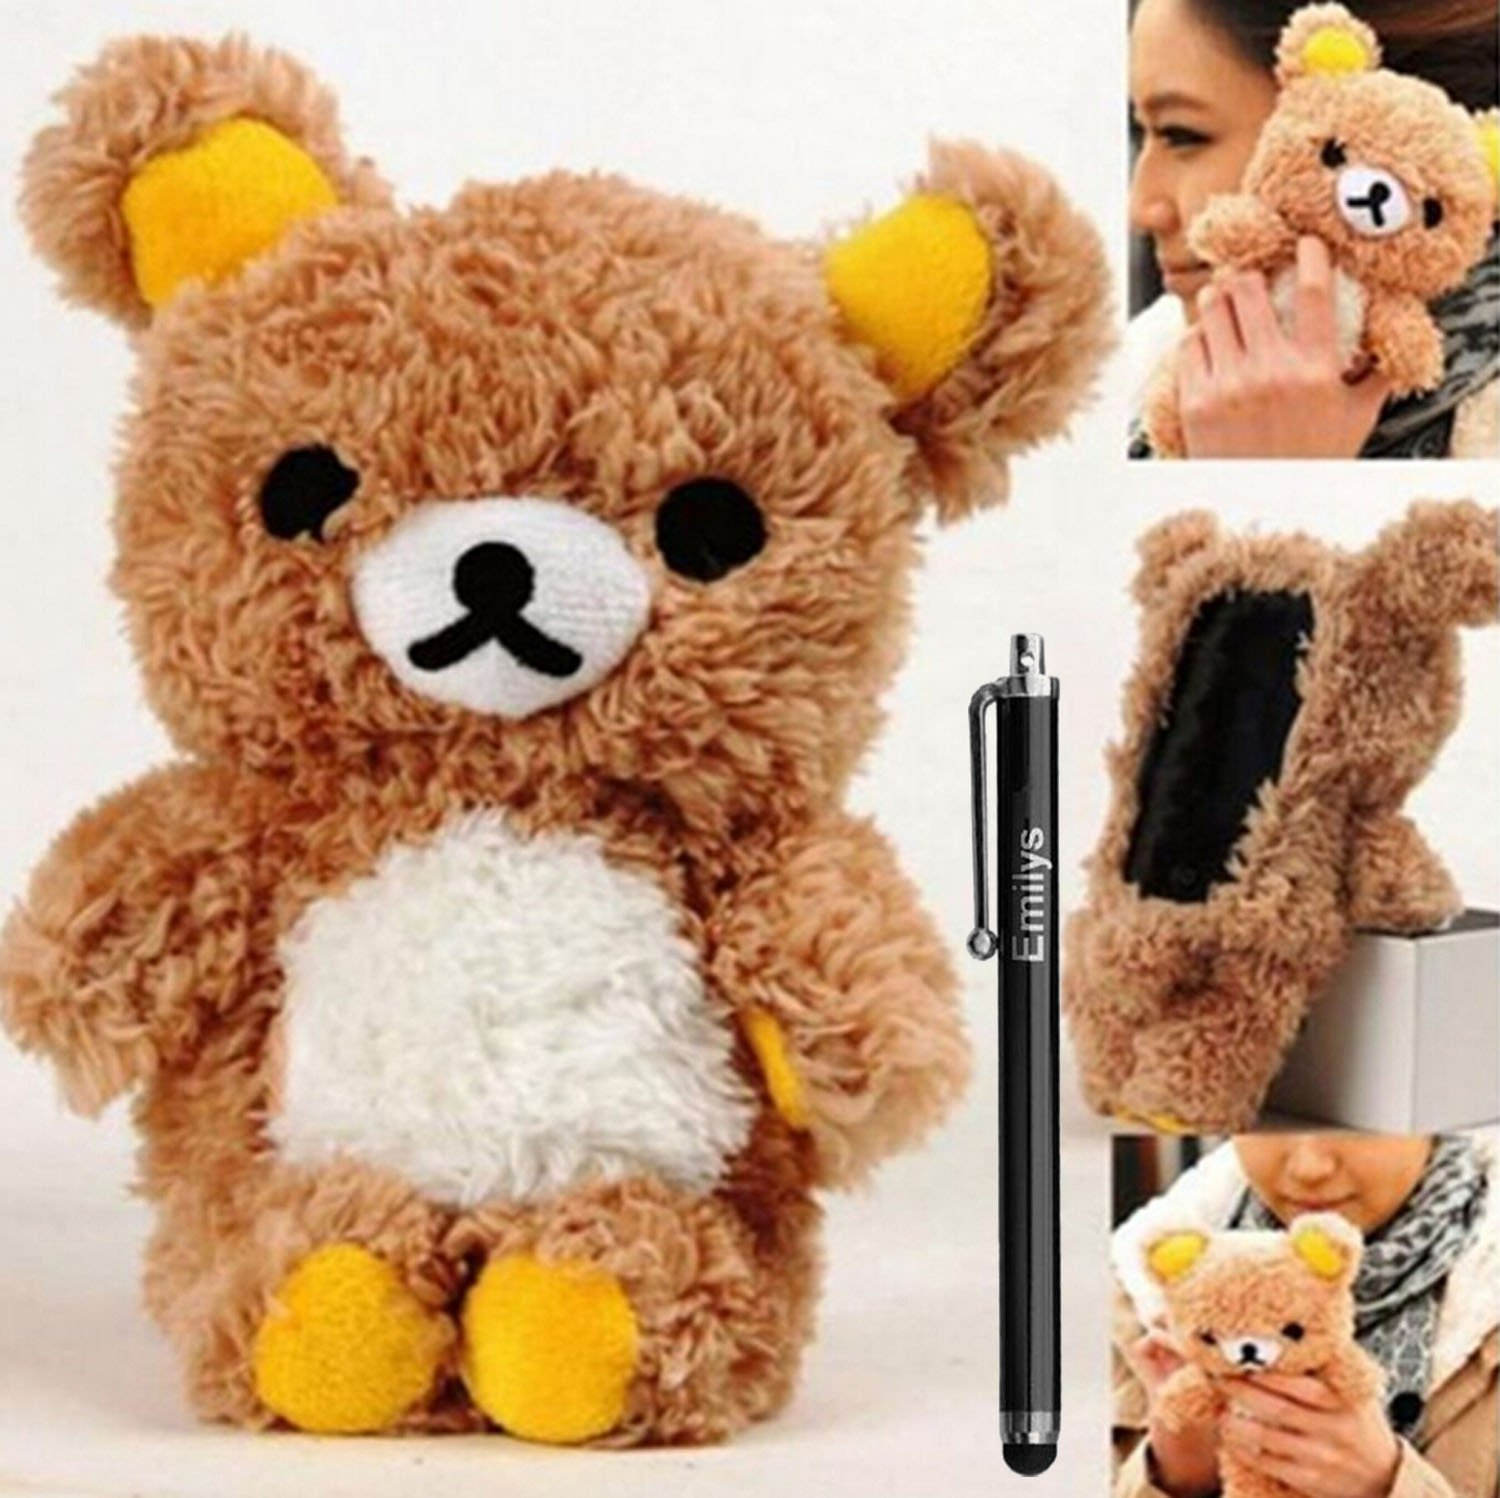 S6 Case,Fusicase Samsung Galaxy S6 case,Fusicase fashion style New Cute 3D Lovely Teddy Bear Doll Toy Cool Plush Fitted Back Phone case Cover for Samsung Galaxy S6 G920F(Brown)